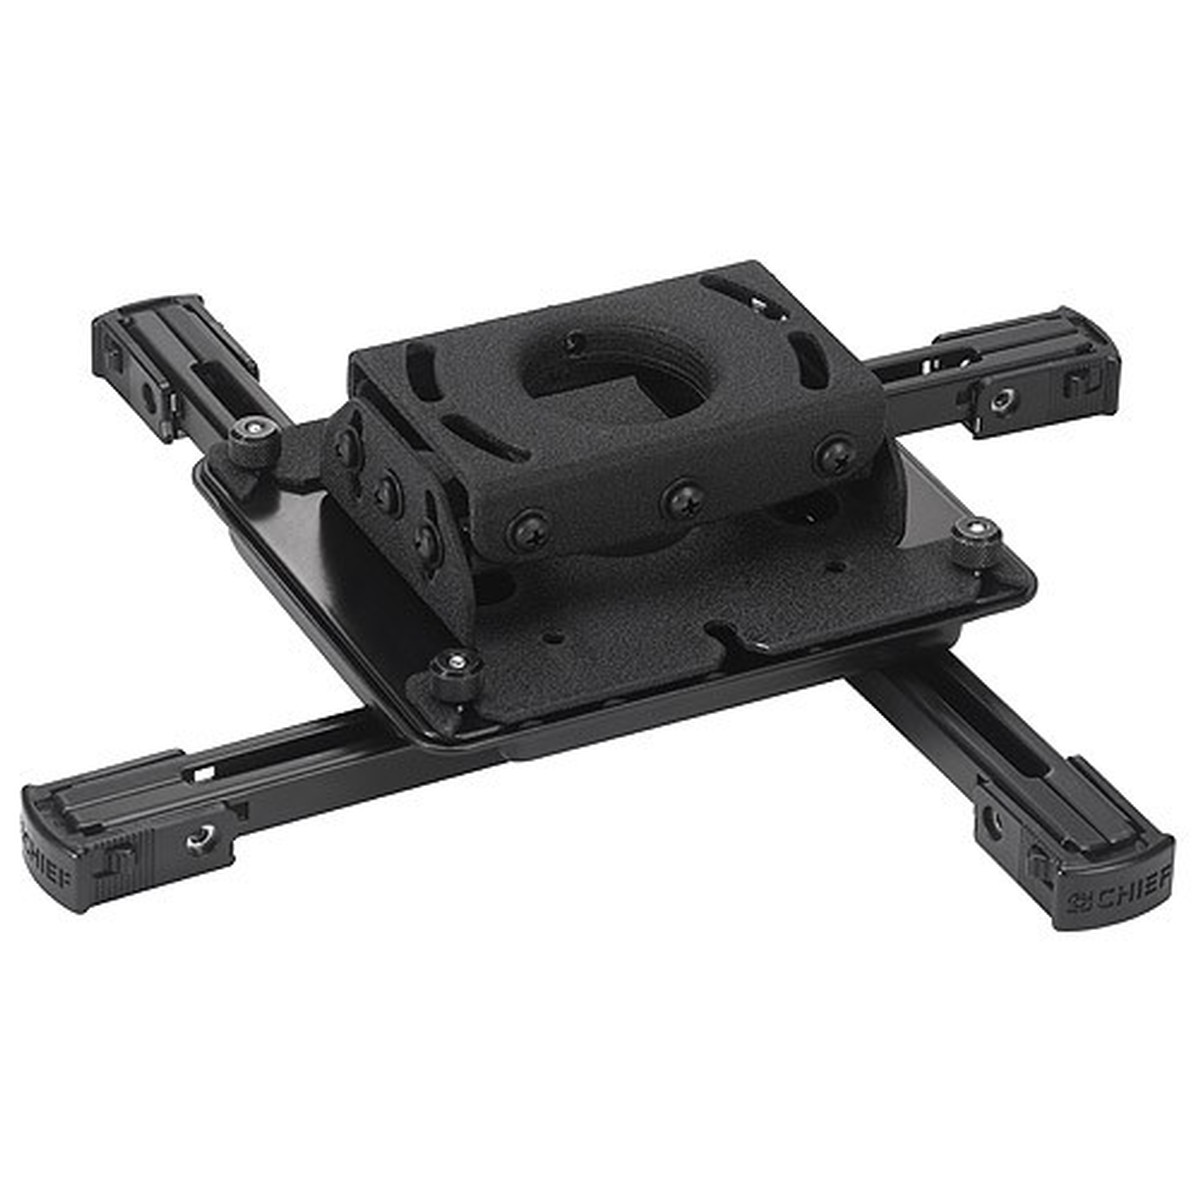 chief rpau universal projector mount with easy adjustments - black